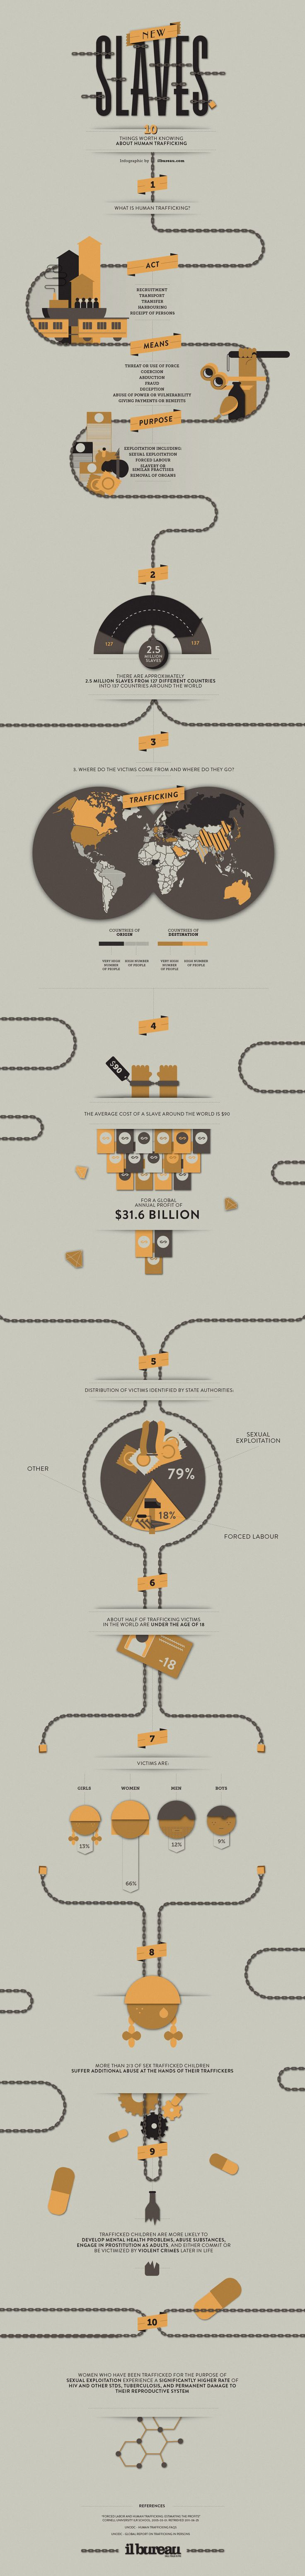 Il-Bureau---#infographic---NEW-SLAVES #design #data #info #infographics